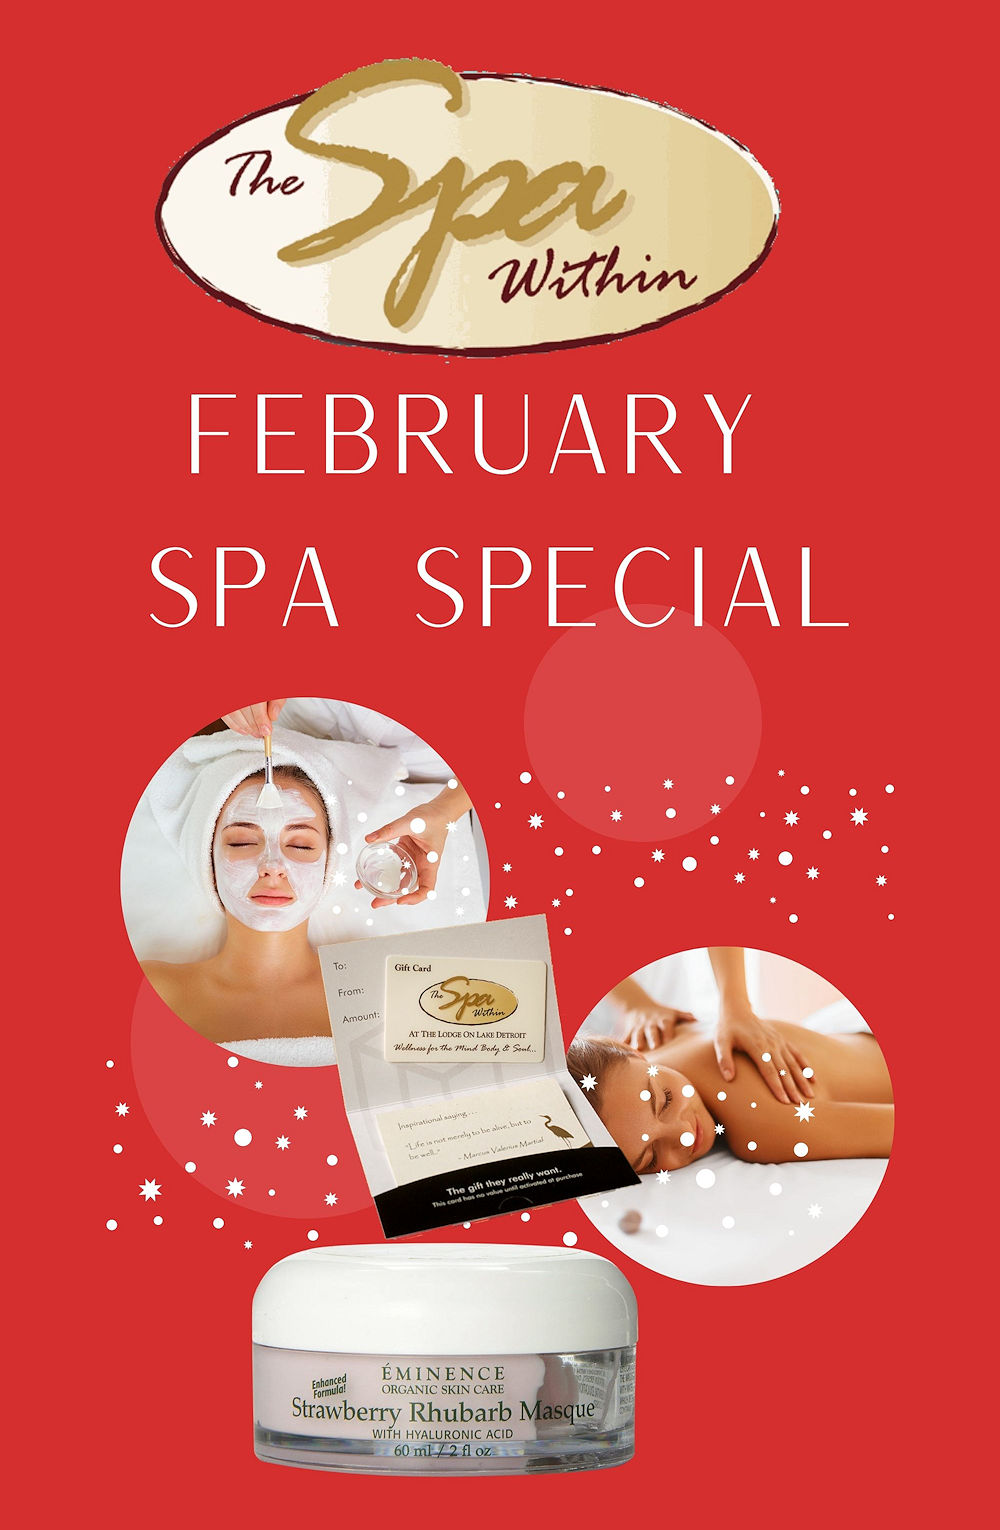 January Spa Specials from The Spa Within at The Lodge on Lake Detroit